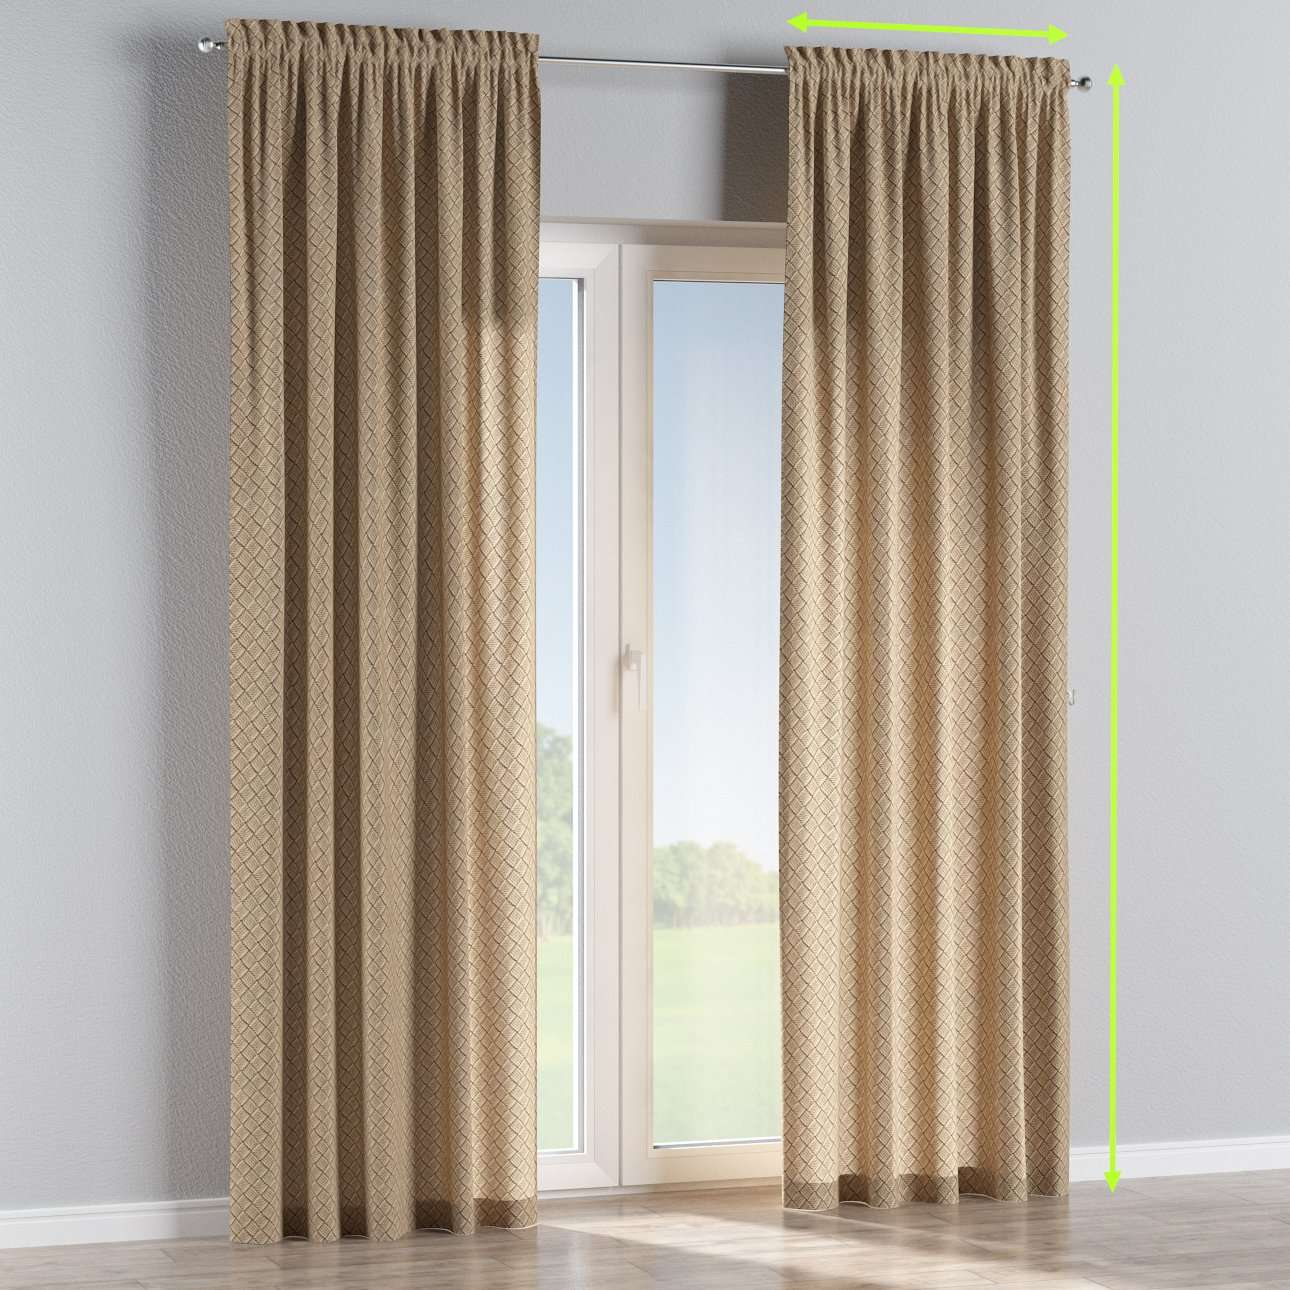 Slot and frill curtains in collection Marina, fabric: 140-17